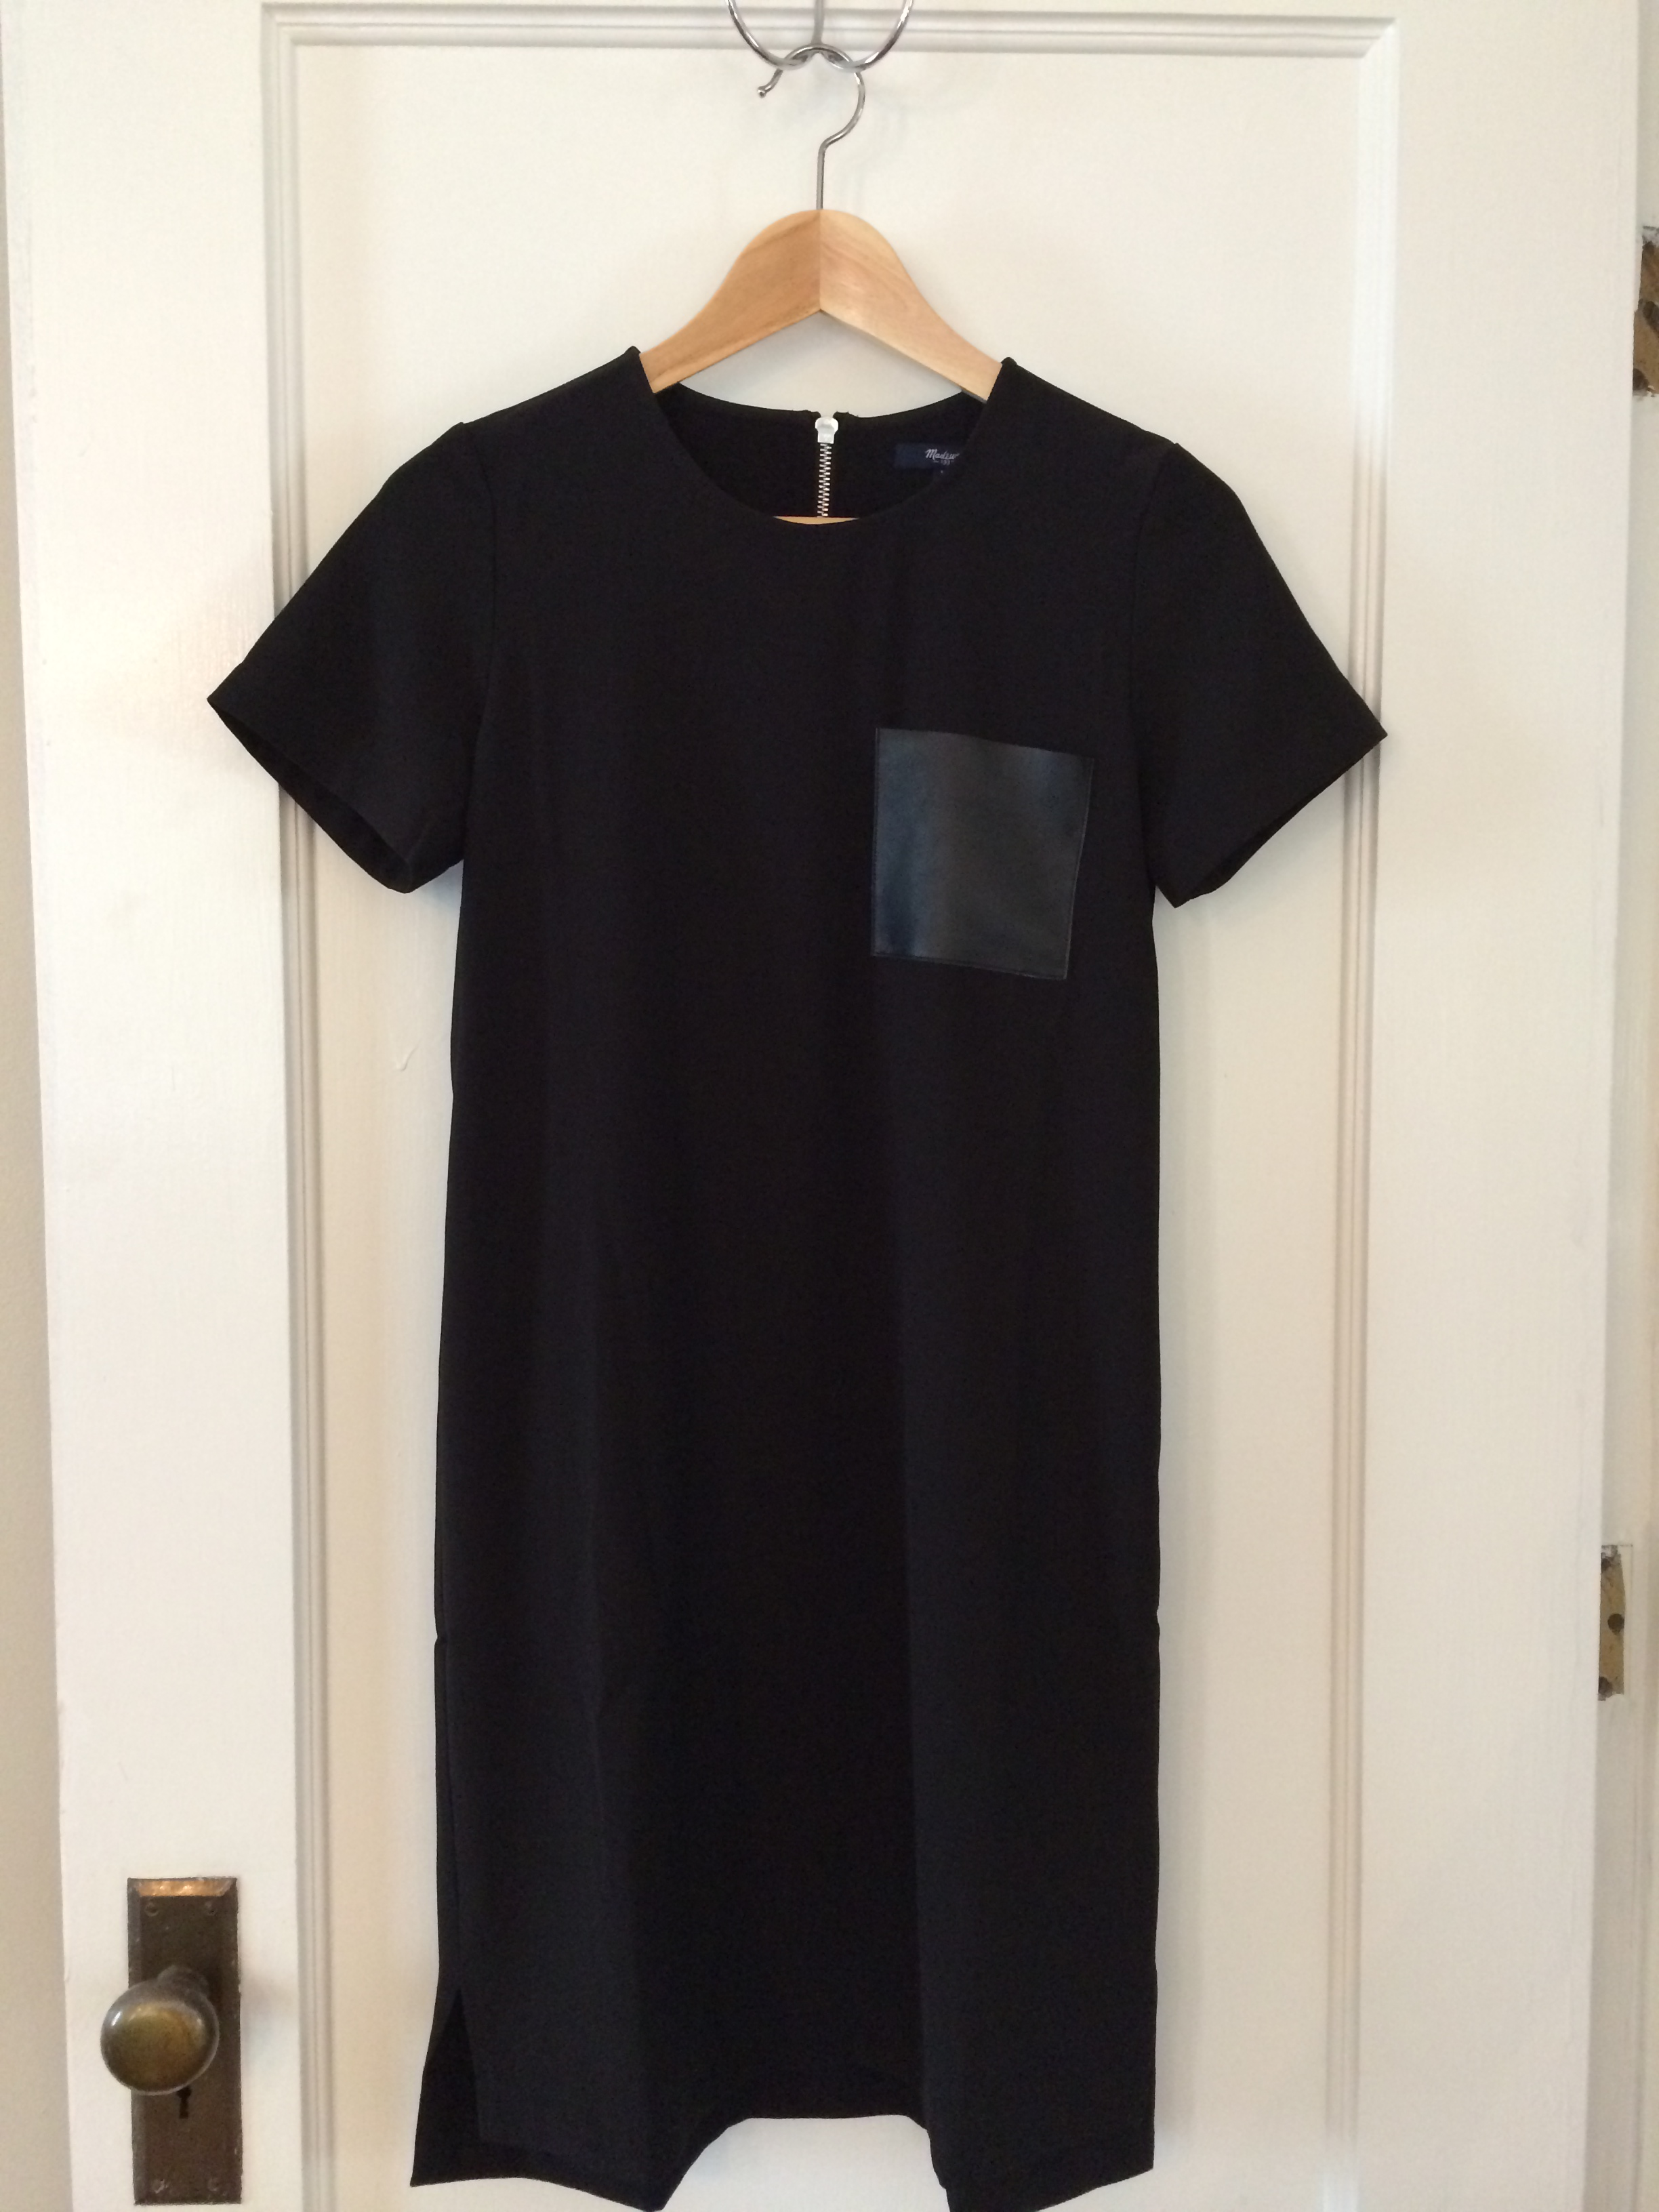 BlackShiftDress